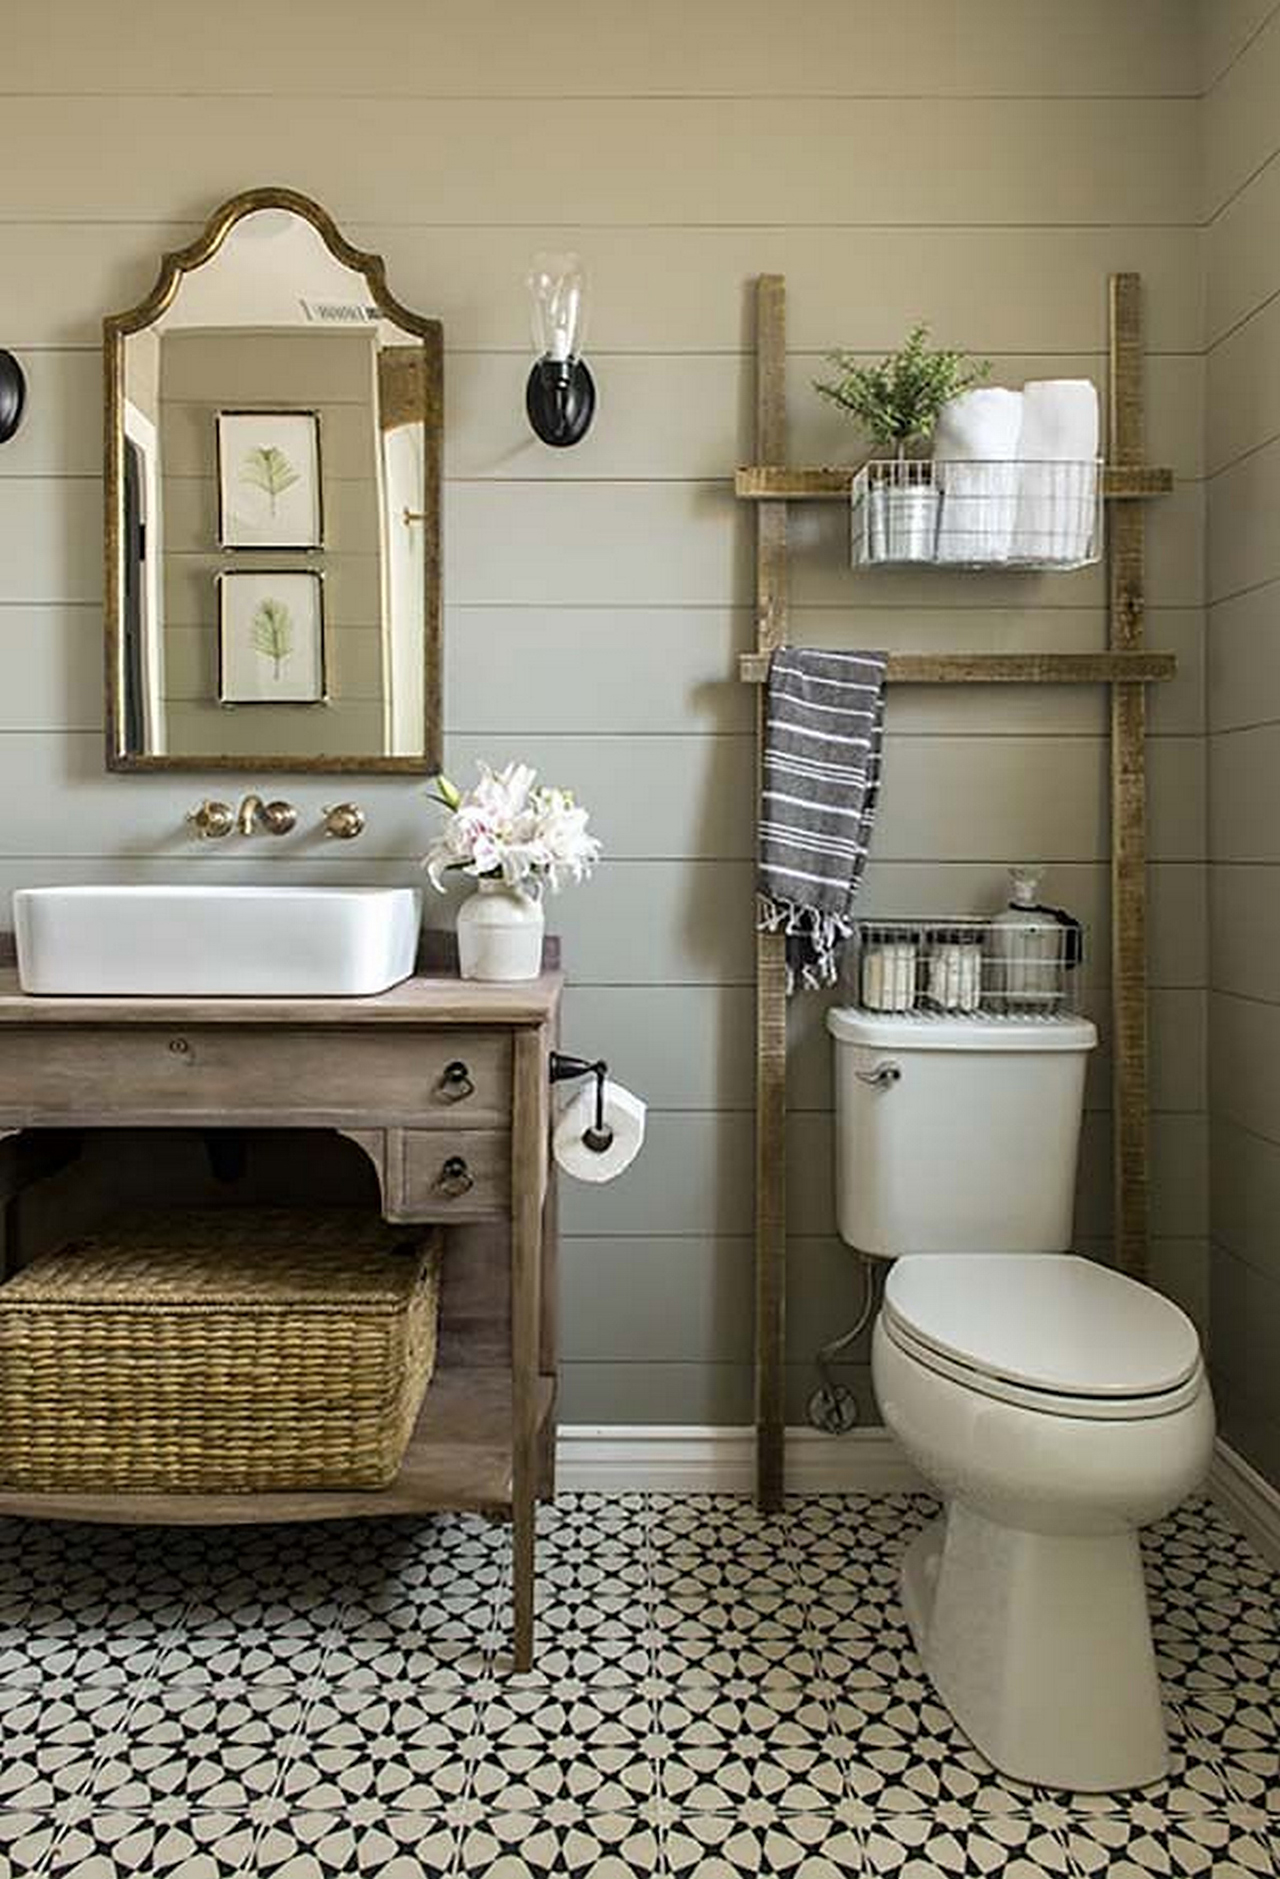 The Golden Blend of Modern and Rustic